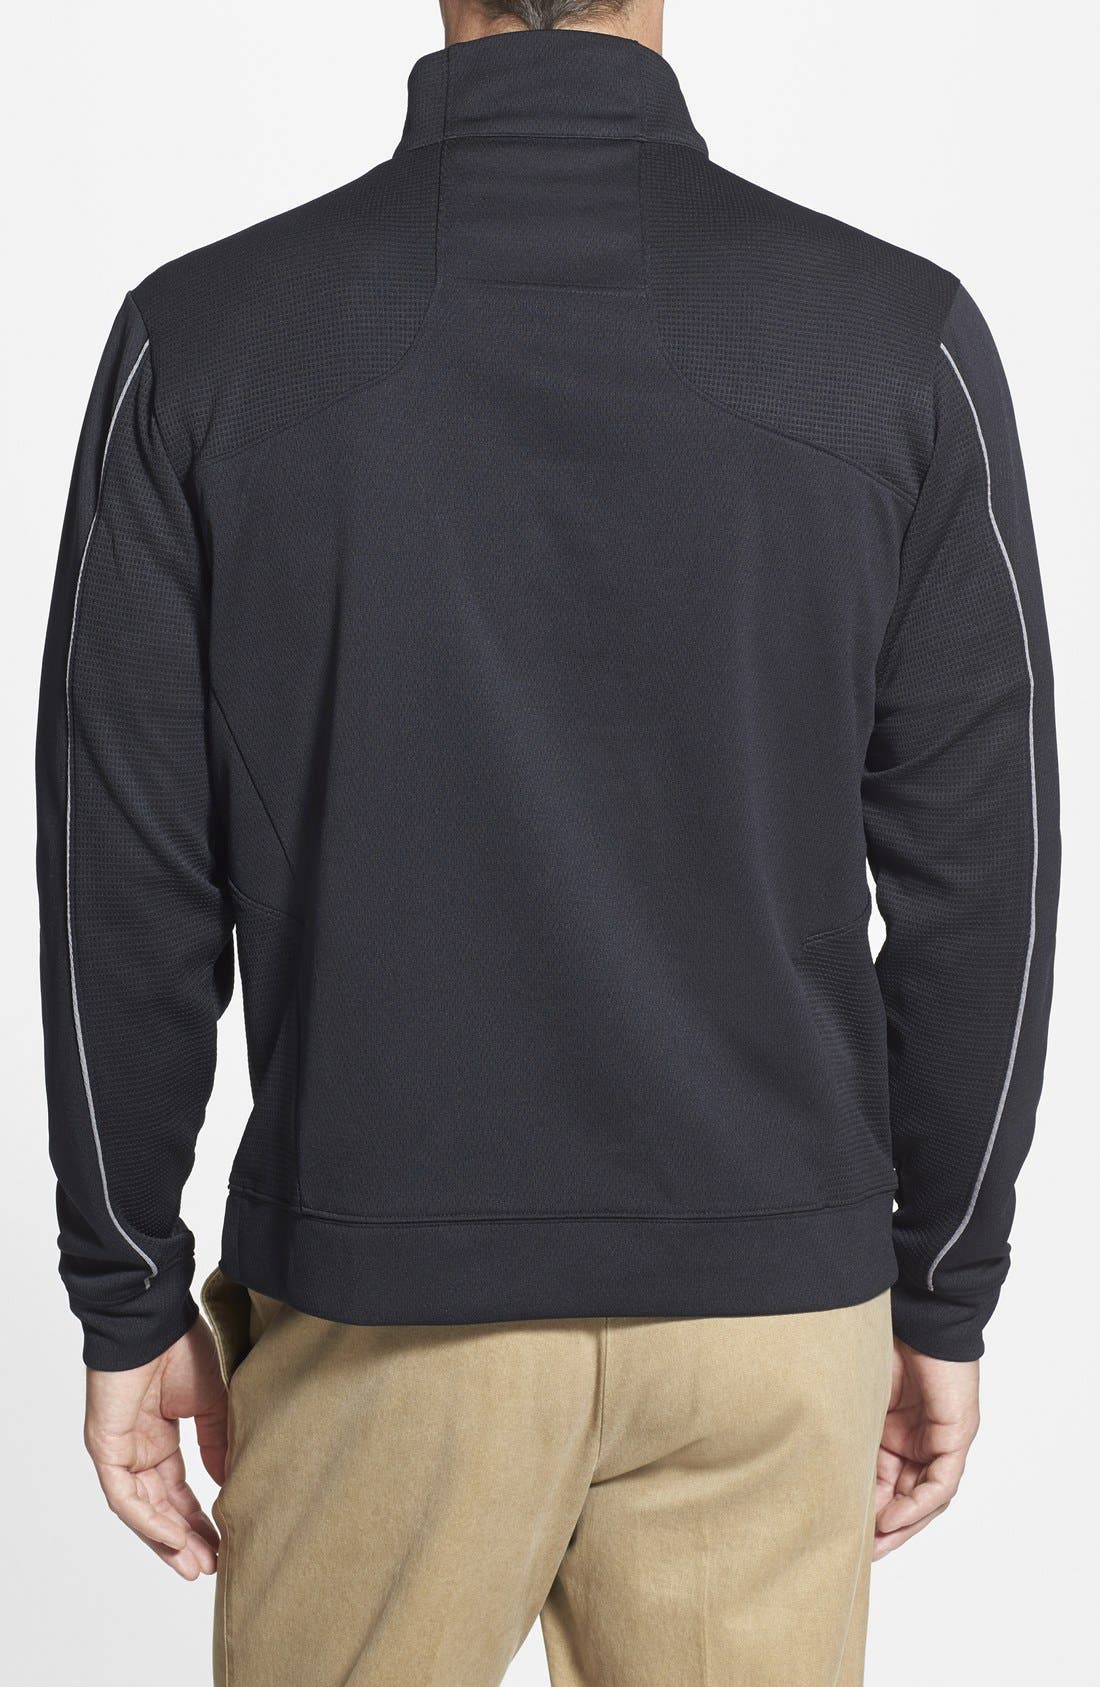 Oakland Raiders - Edge DryTec Moisture Wicking Half Zip Pullover,                             Alternate thumbnail 2, color,                             Black